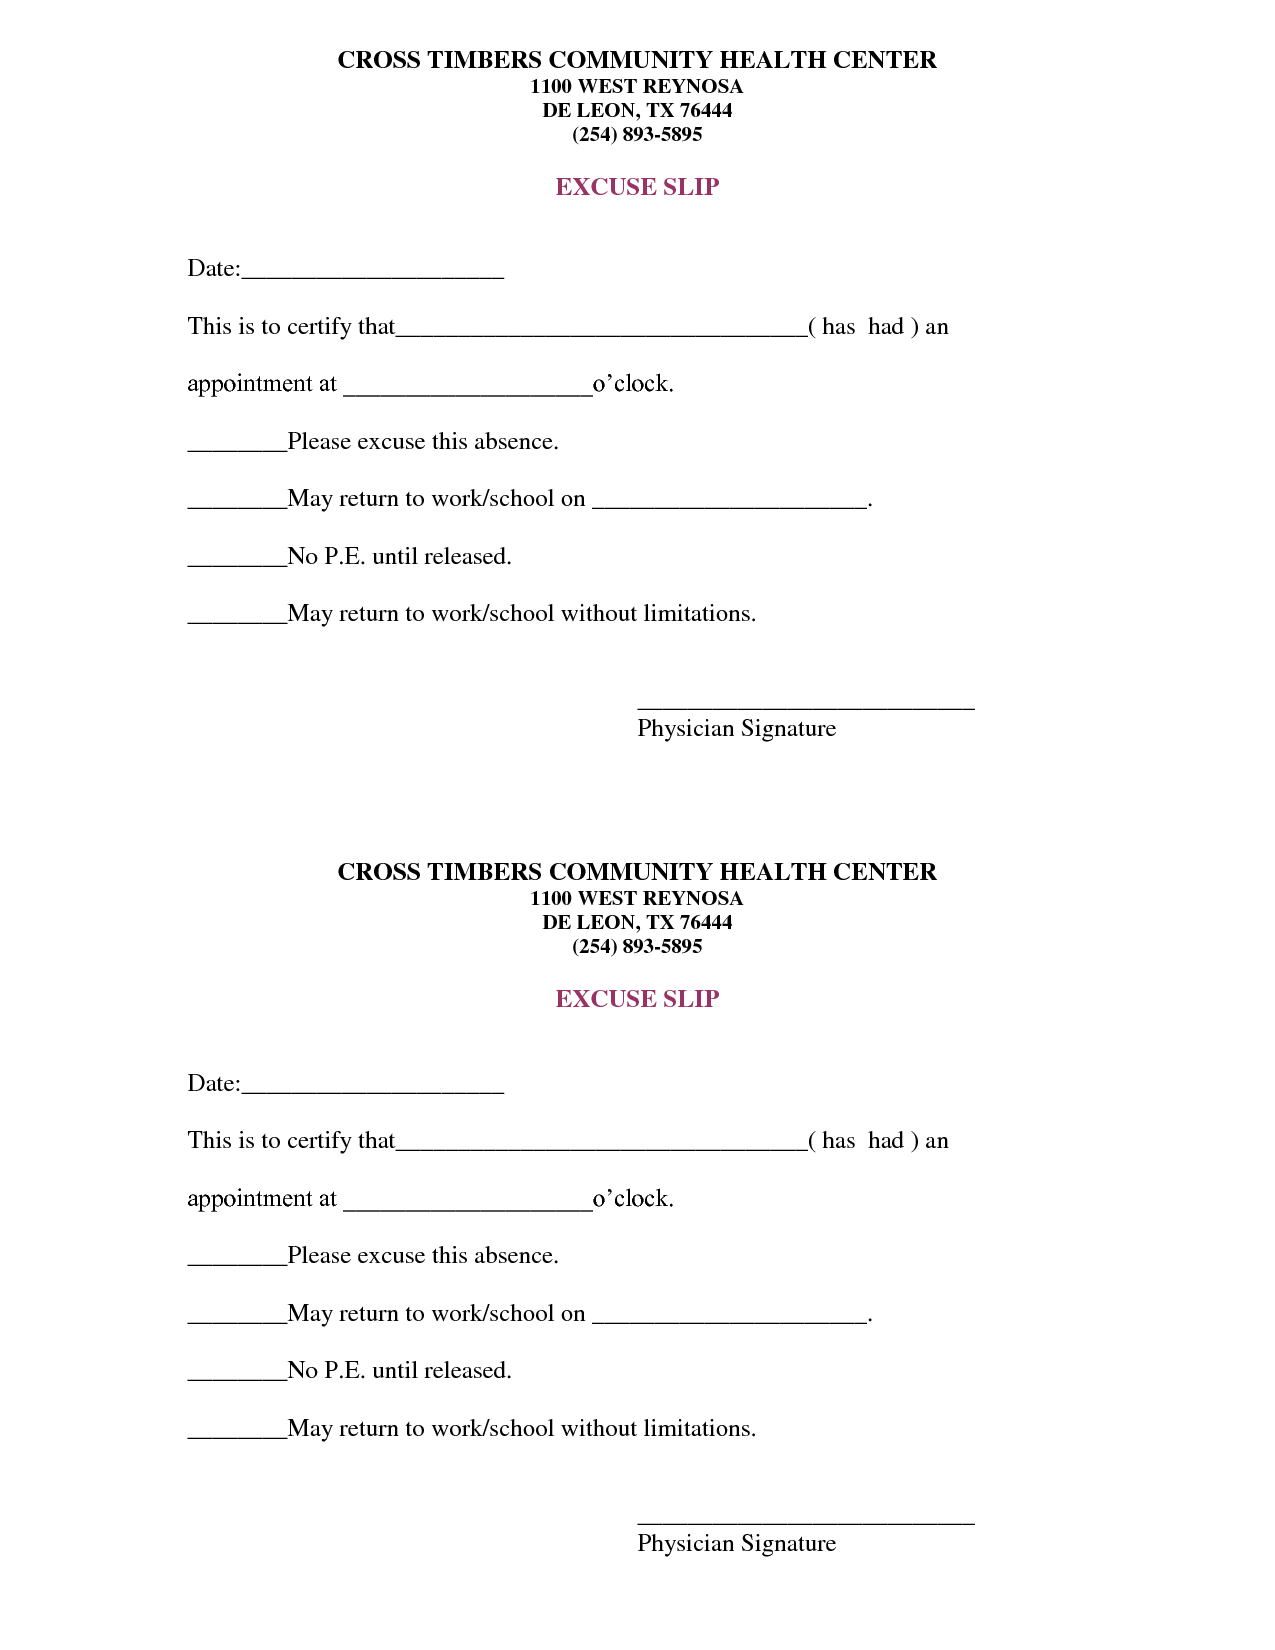 Free Doctors Note Template | Scope Of Work Template | On The Run - Free Printable Doctors Excuse For Work